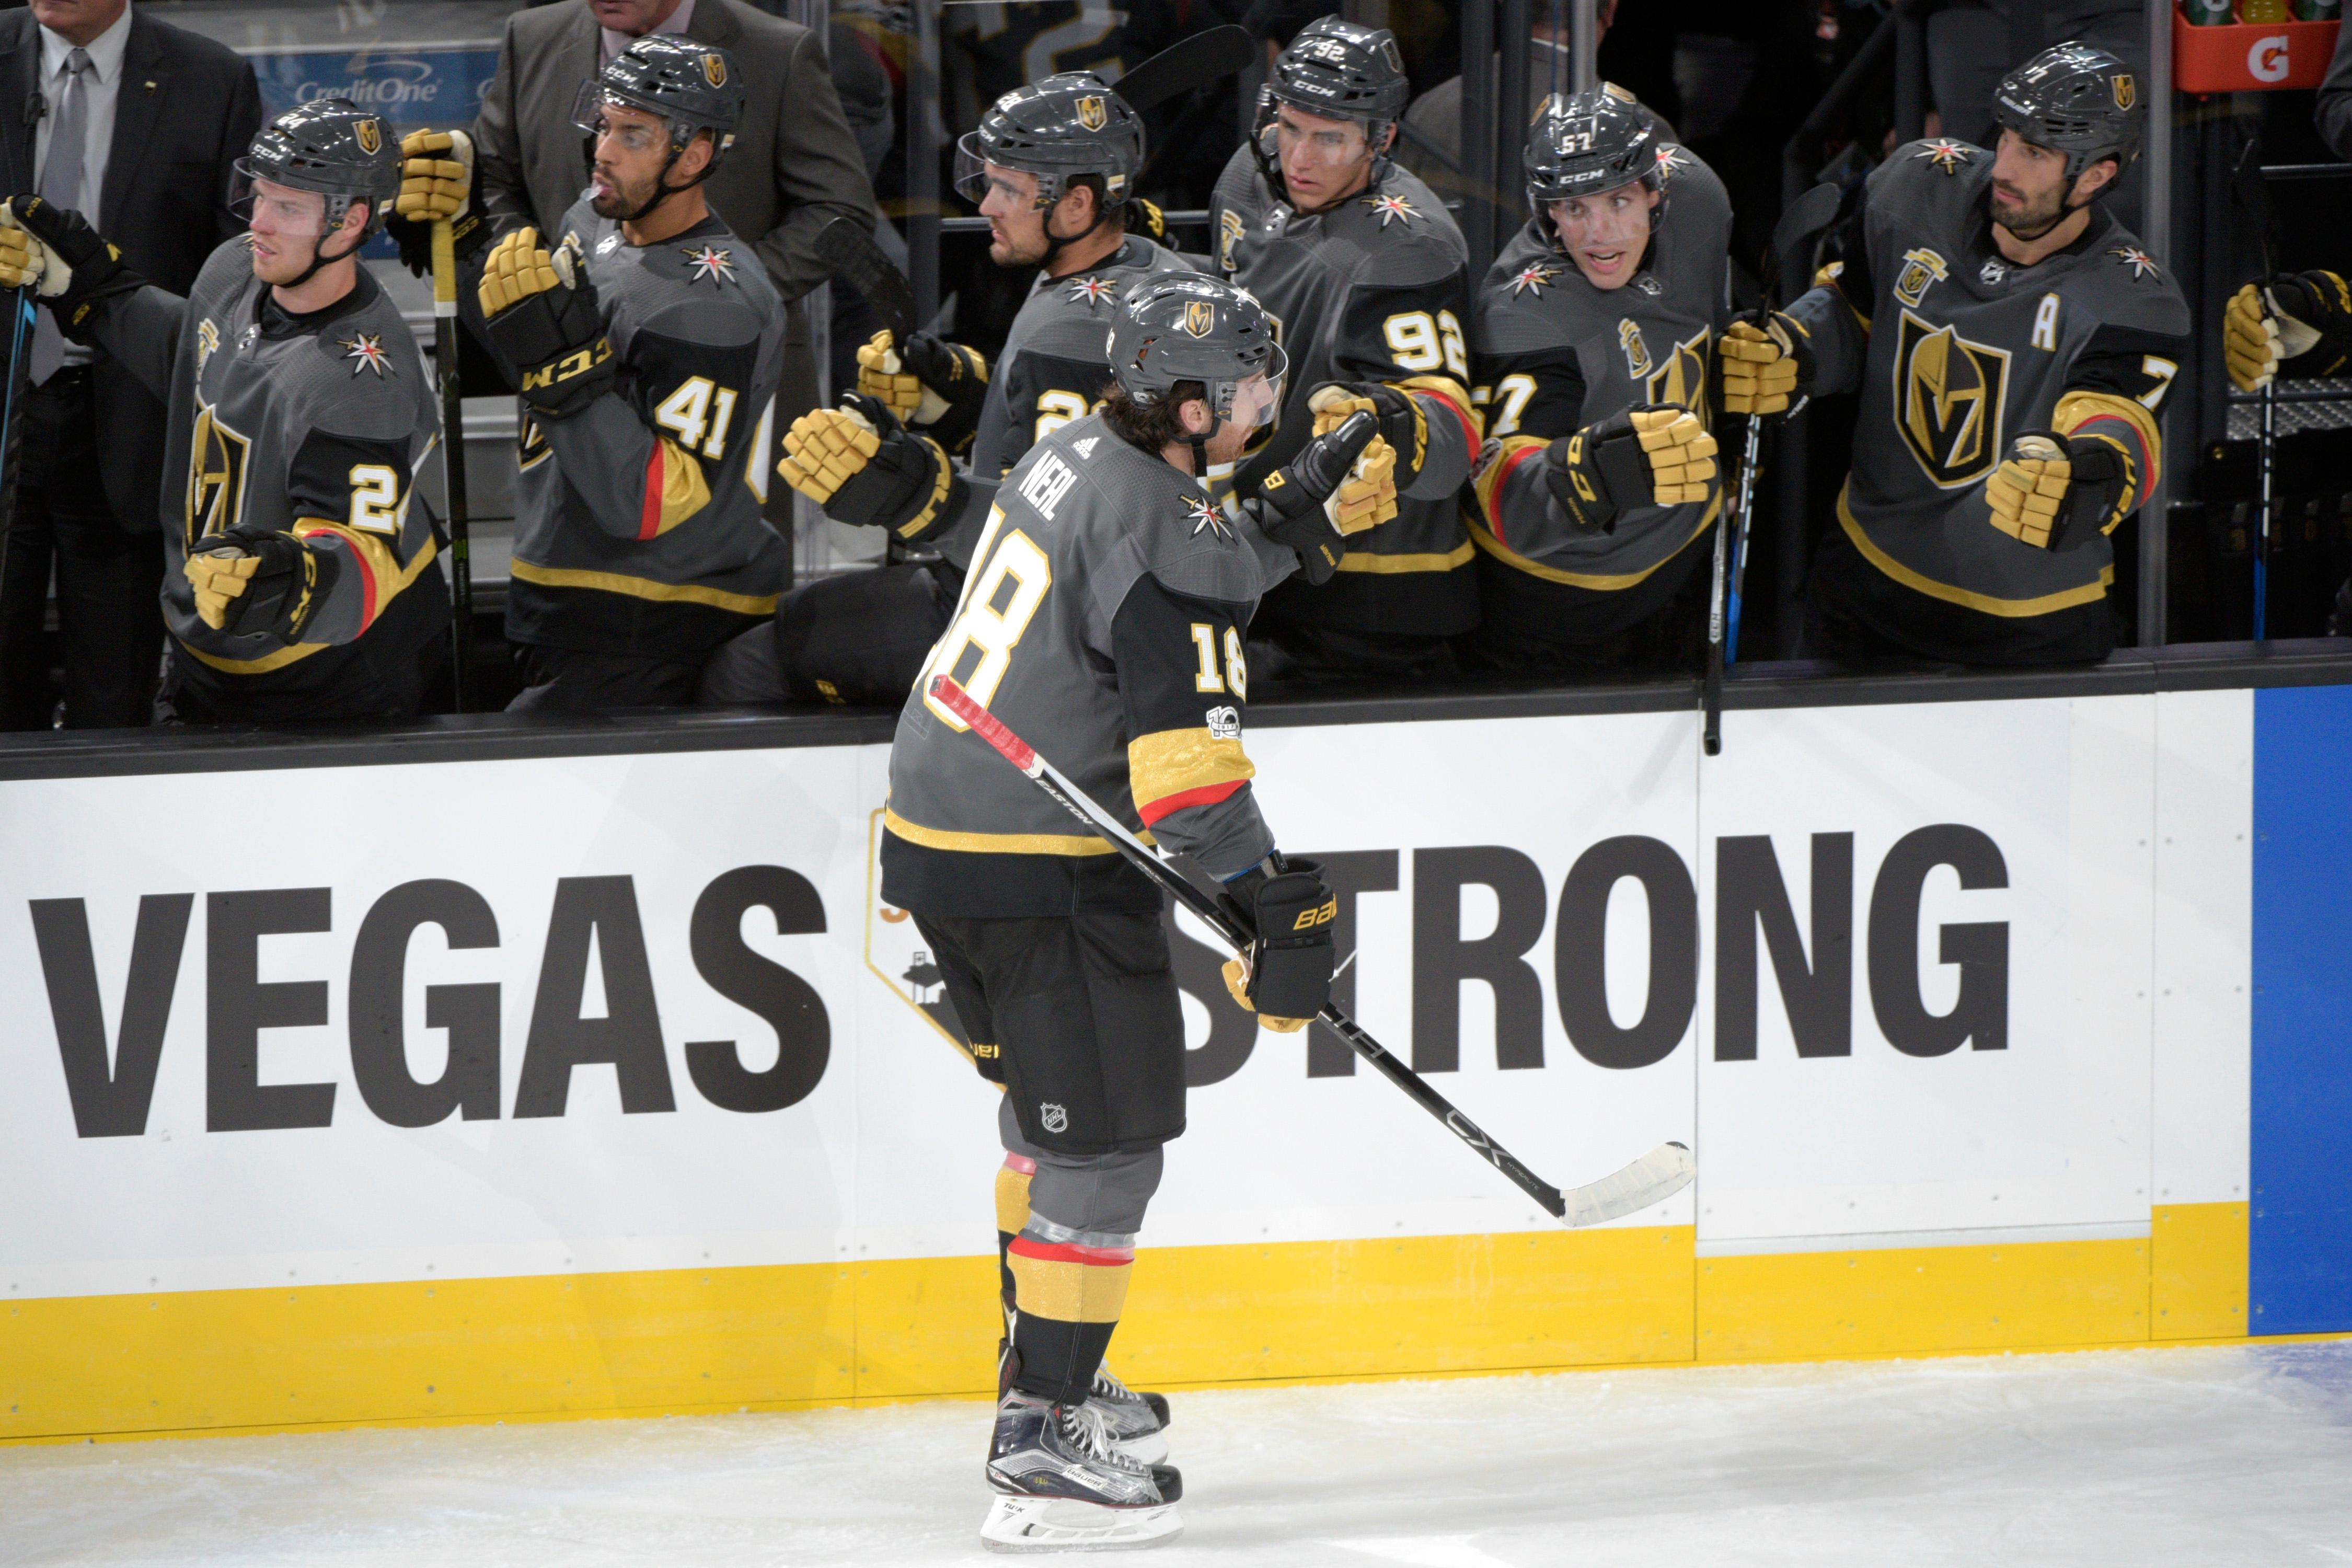 Vegas Golden Knights right wing James Neal (18) is congratulated after a gaol during the Knights home opener against the Arizona Coyotes Tuesday, Oct. 10, 2017, at the T-Mobile Arena. The Knights won 5-2 to extend their winning streak to 3-0. CREDIT: Sam Morris/Las Vegas News Bureau